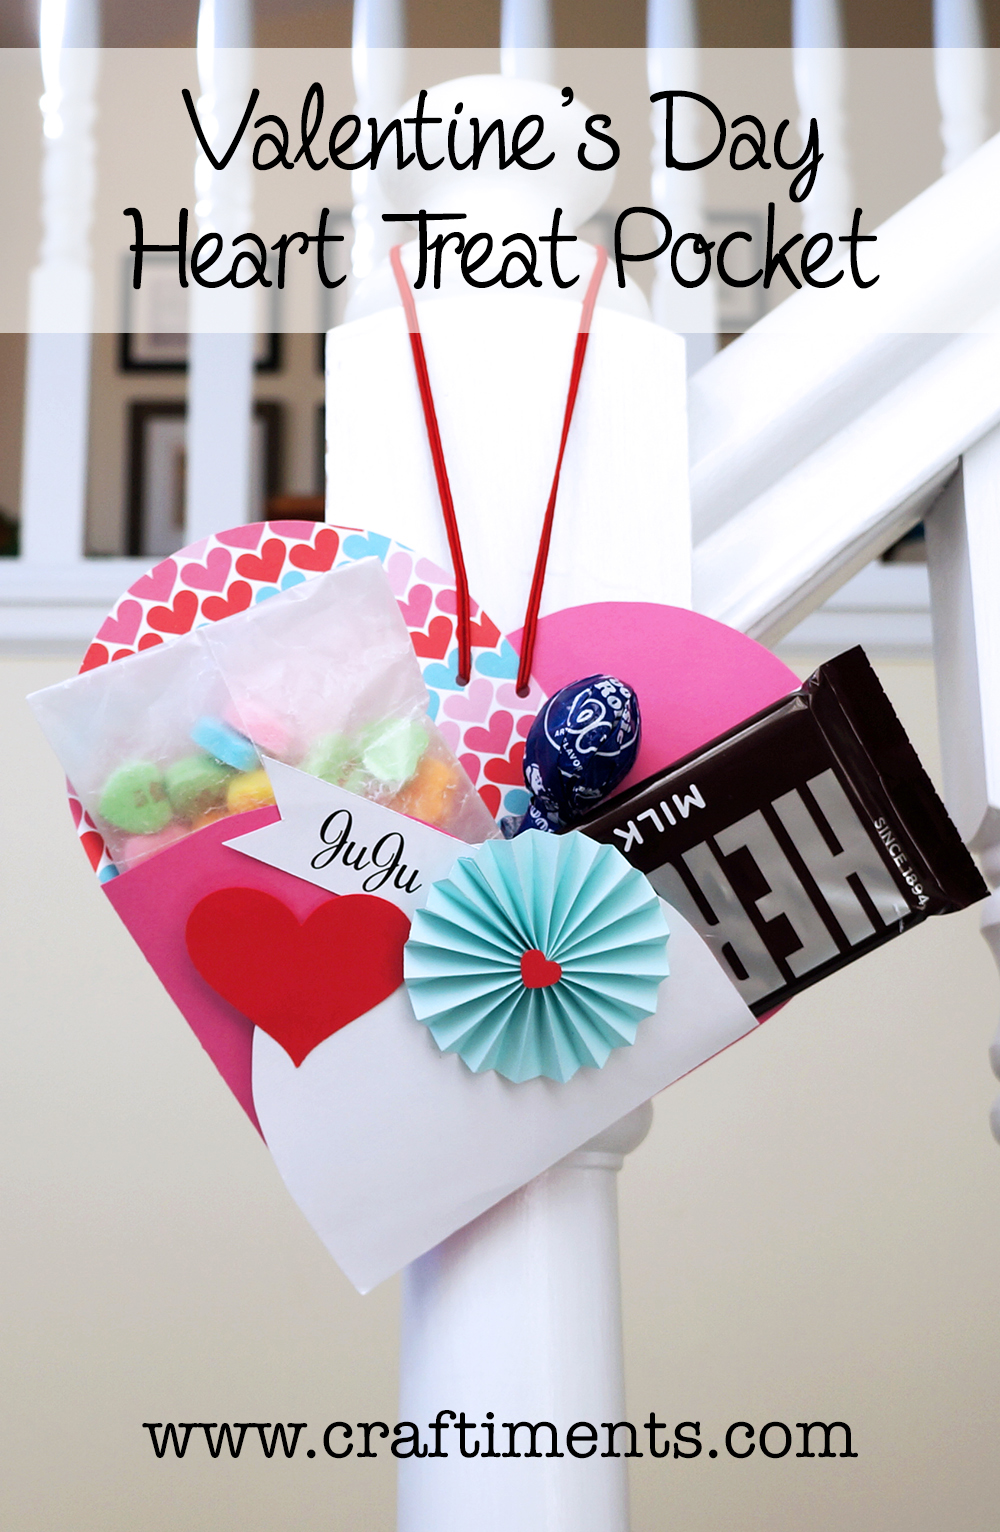 Valentine's Day heart treat pocket tutorial